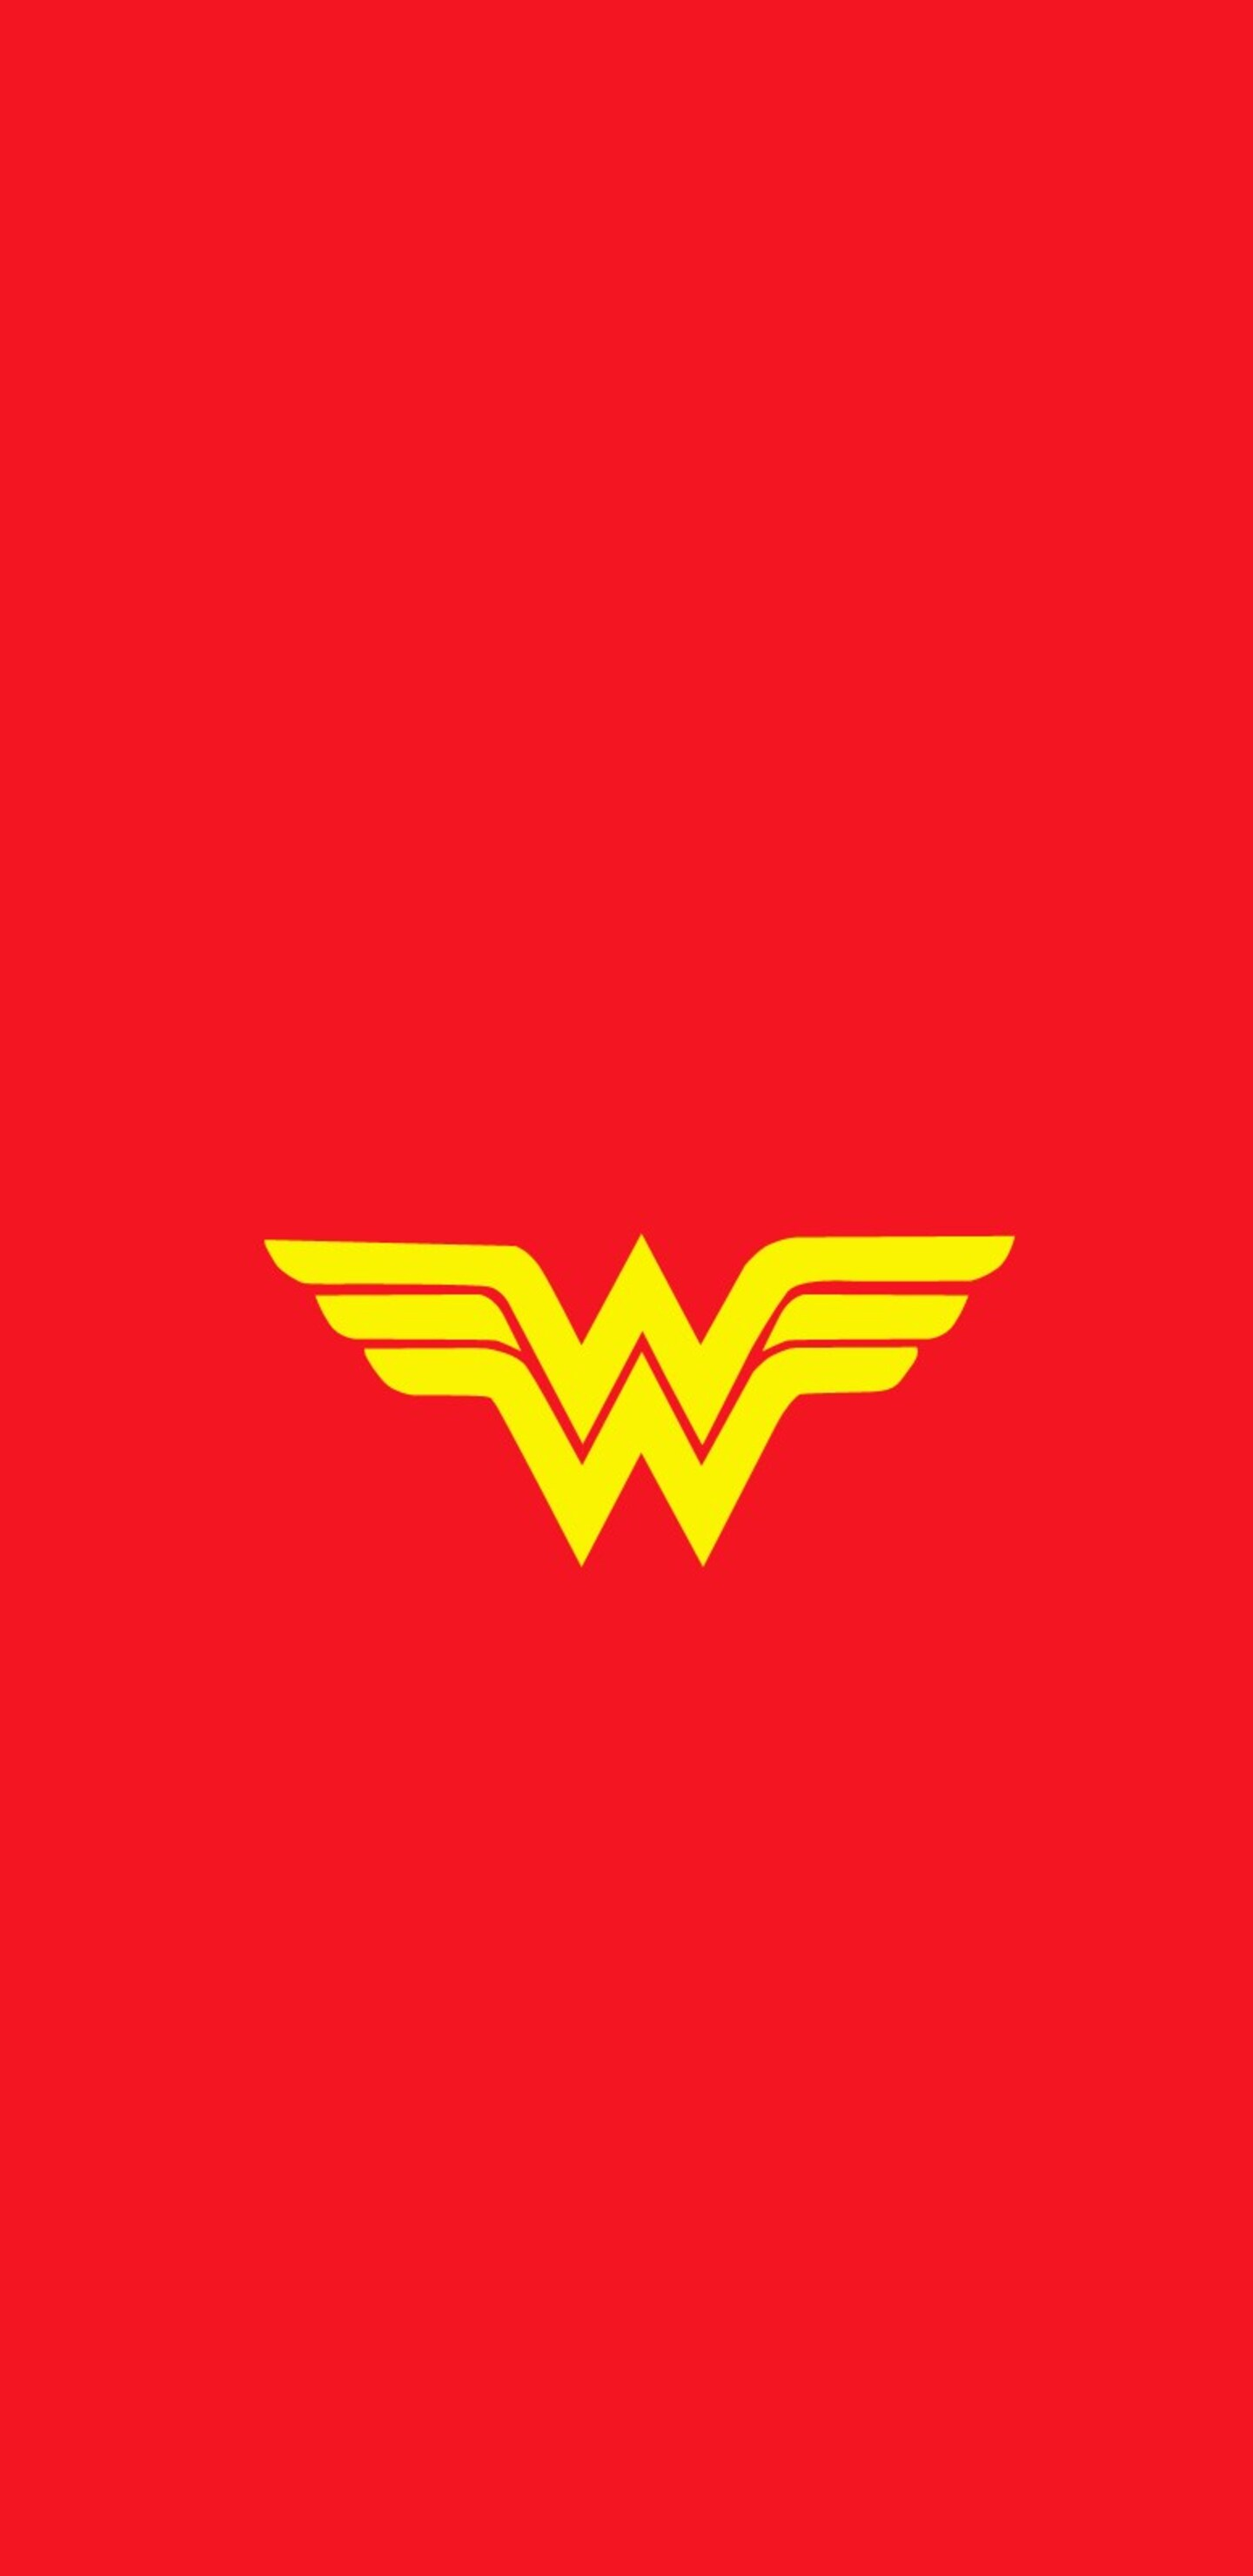 1440x2960 Wonder Woman Logo Samsung Galaxy Note 9 8 S9 S8 S8 Qhd Hd 4k Wallpapers Images Backgrounds Photos And Pictures